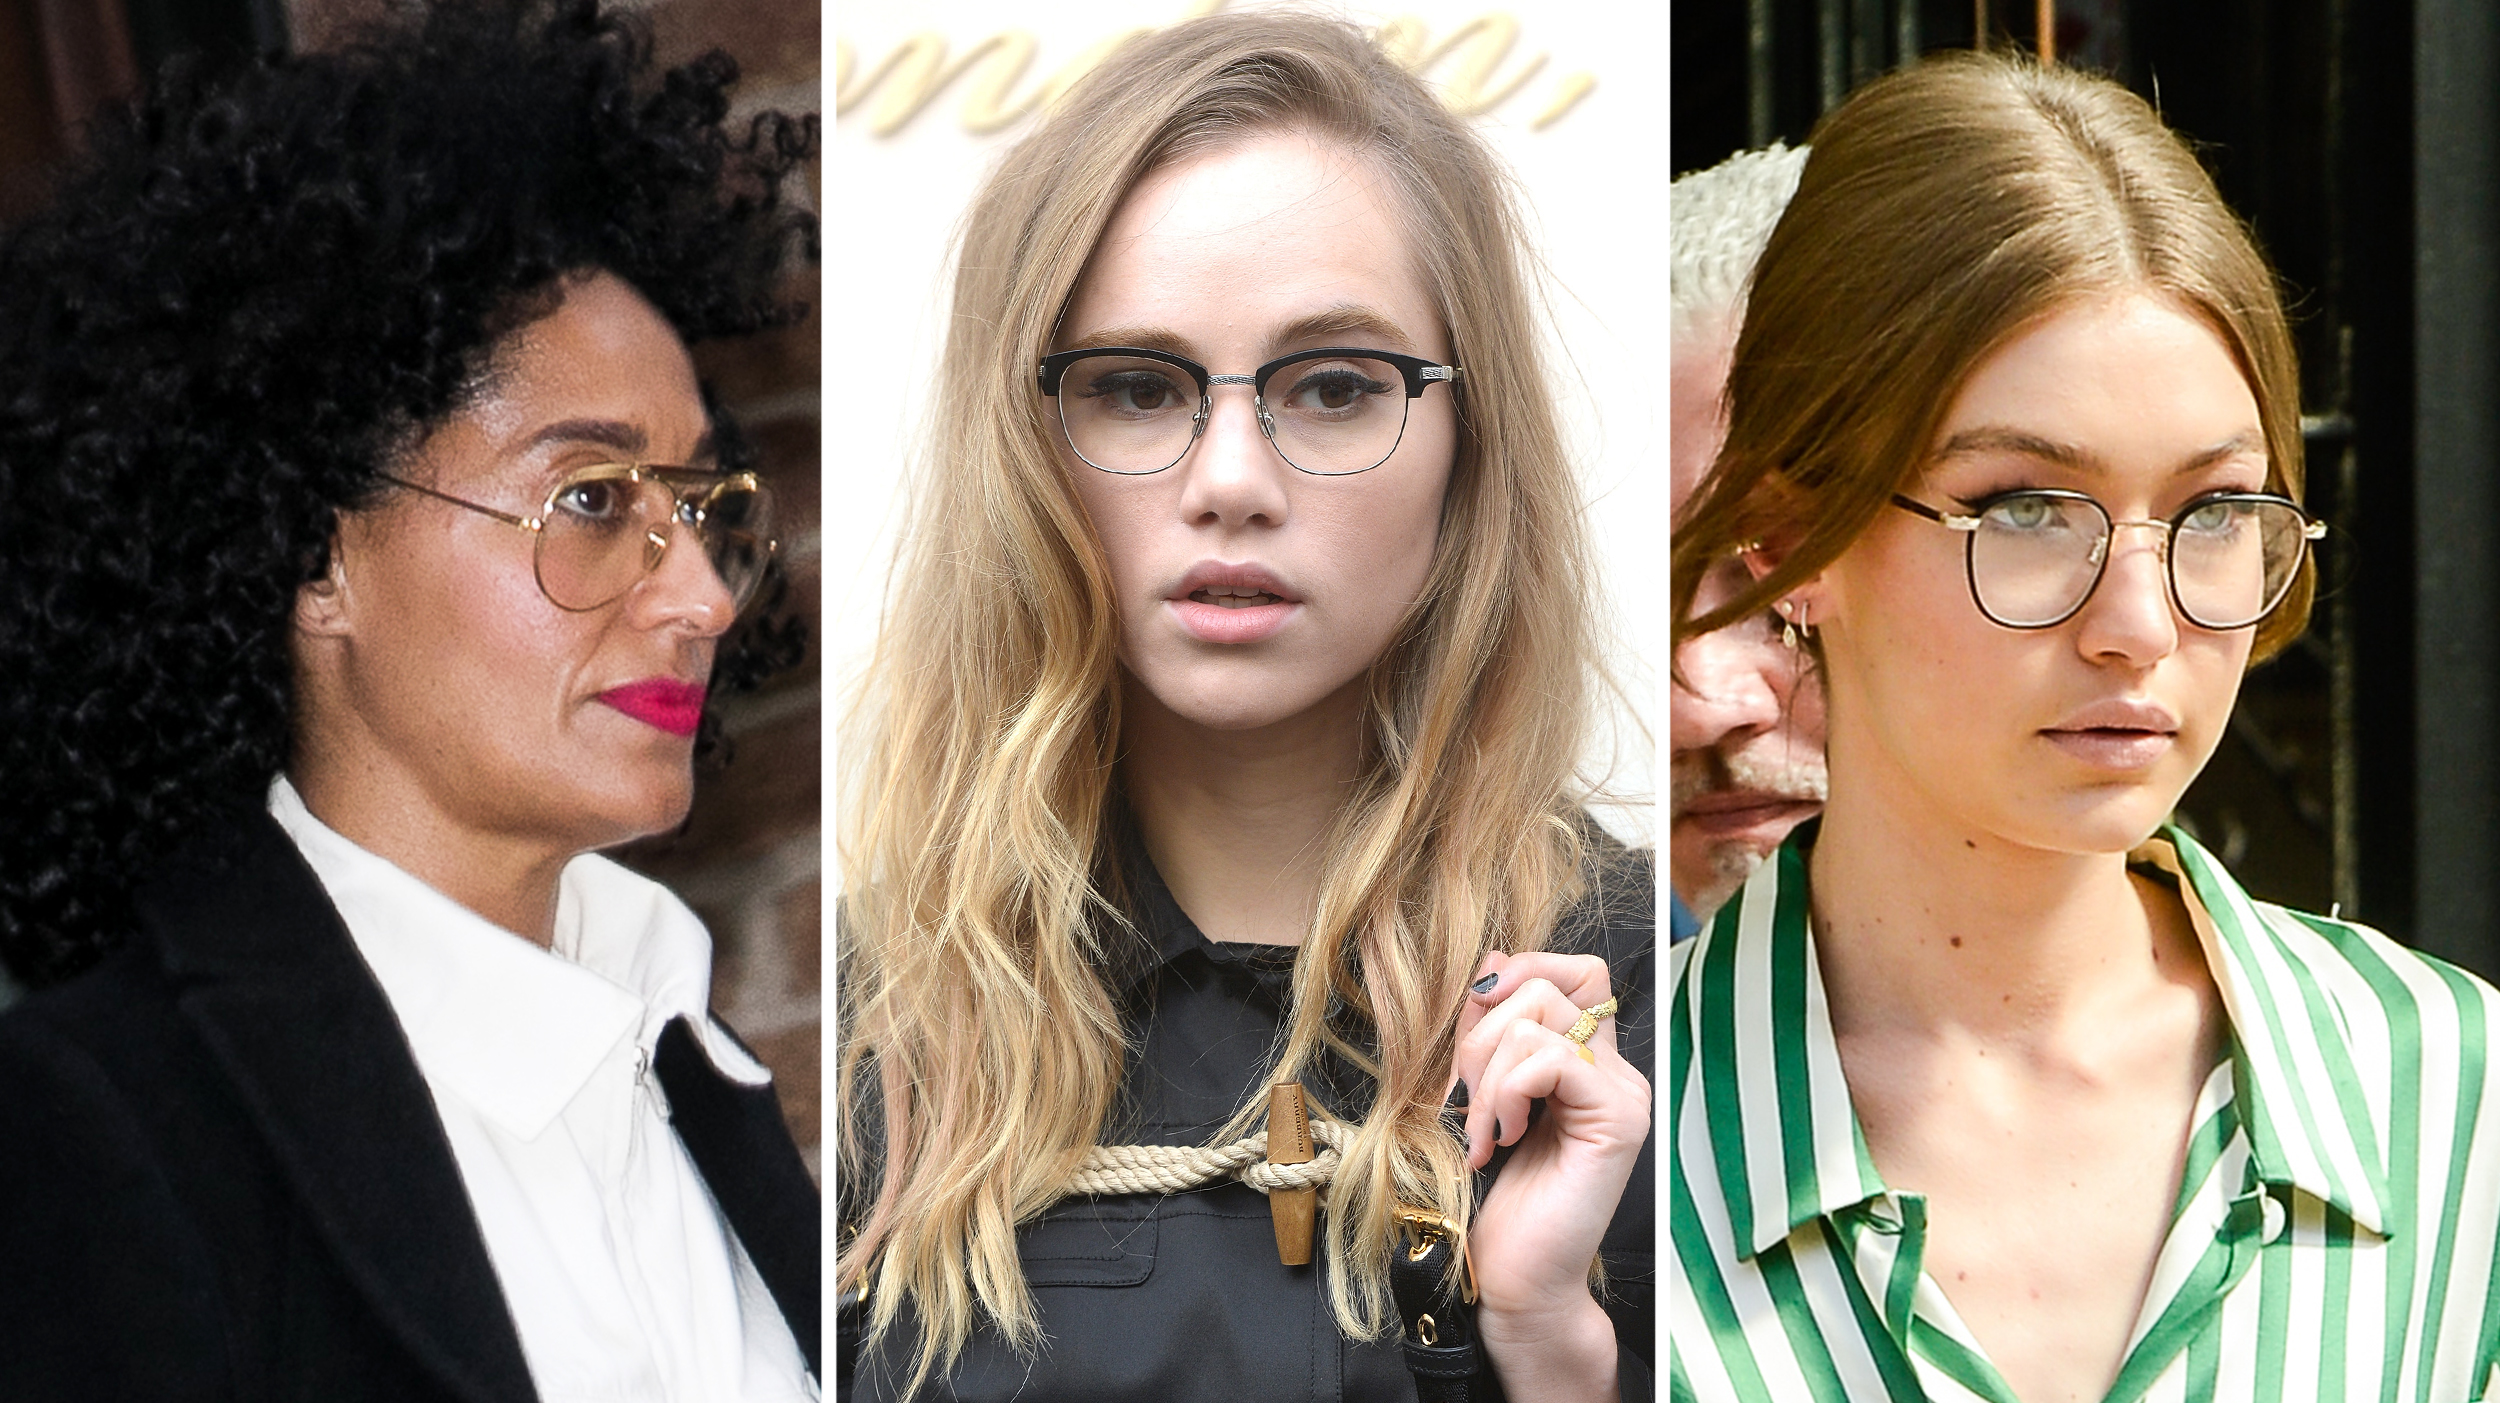 This Is the Eyewear Trend That Will Be Huge in Fall 2017